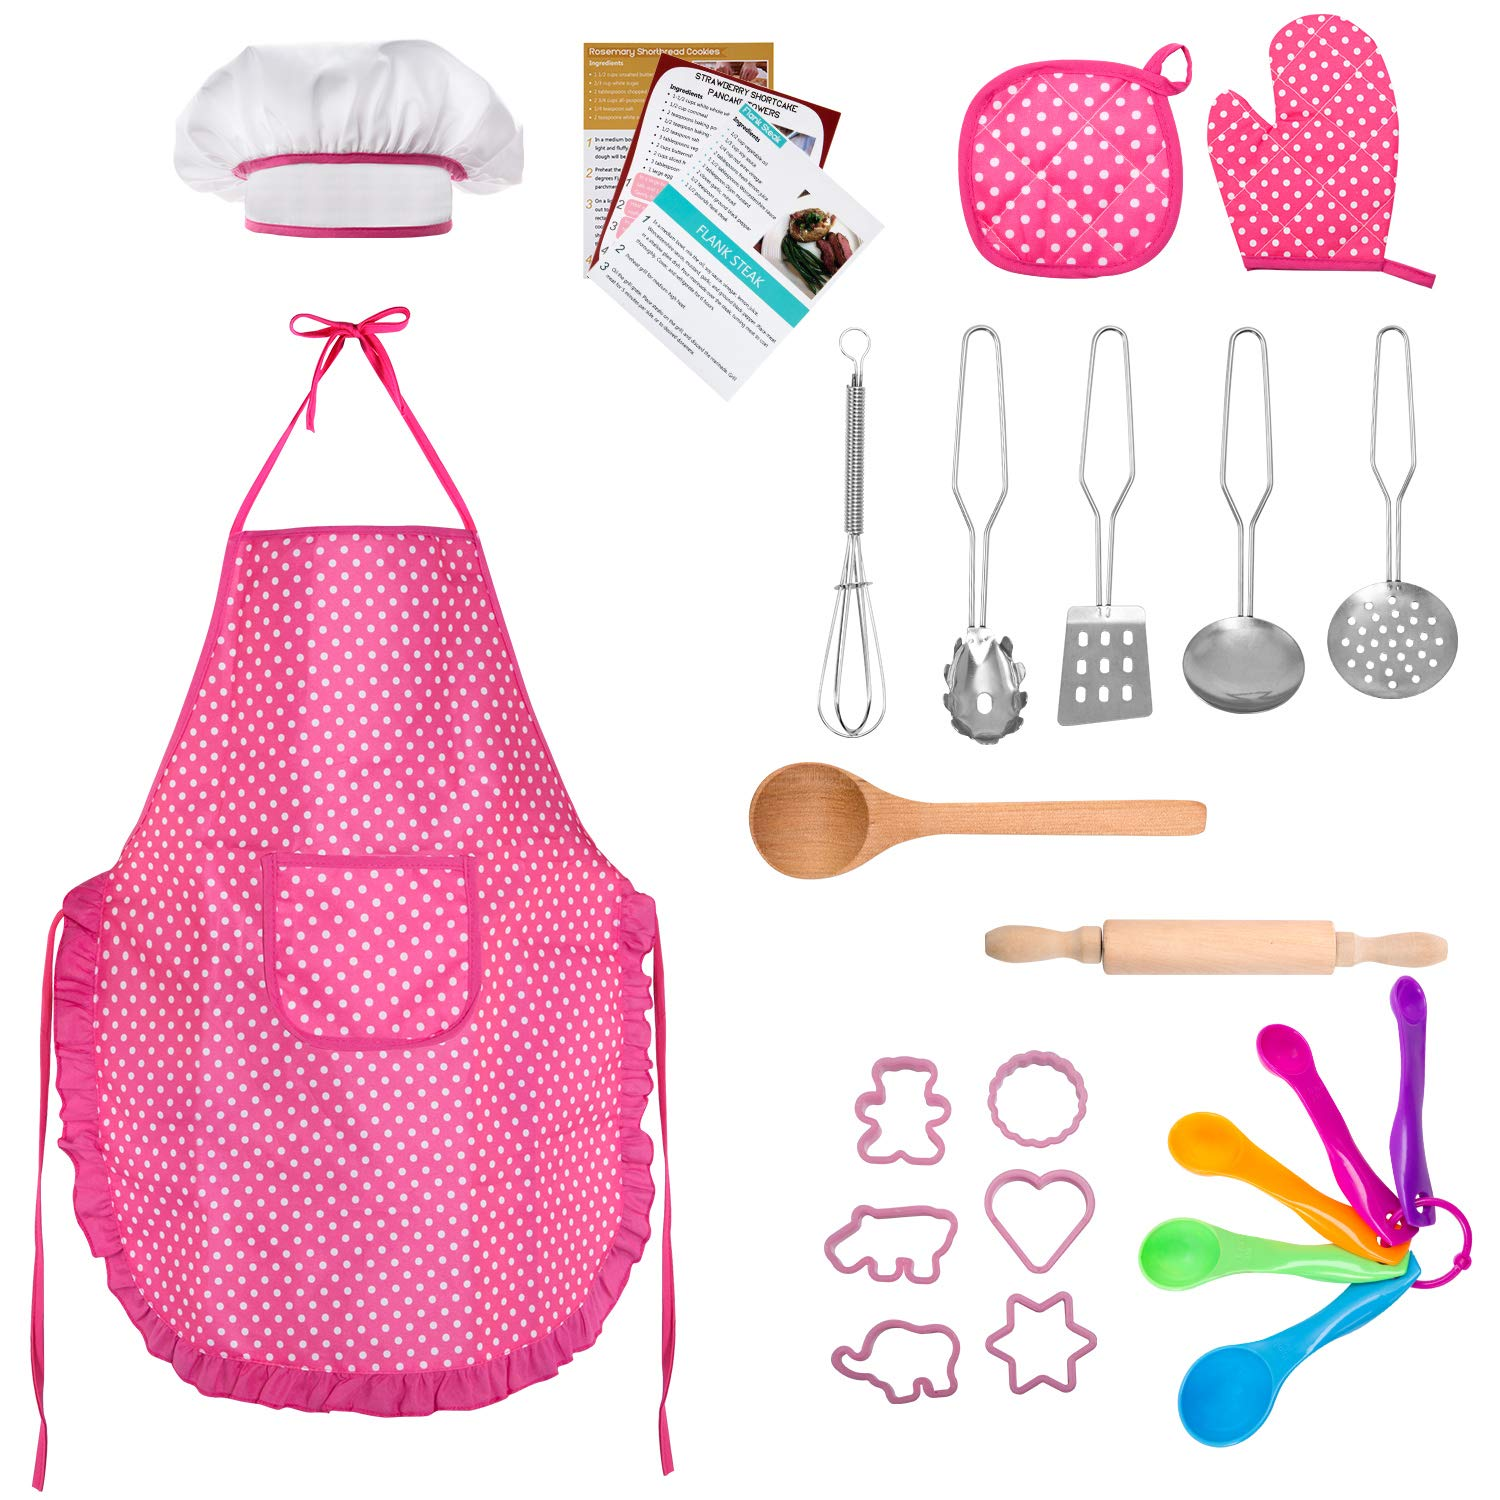 TEPSMIGO Kids Chef Role Play Costume Set 22 PCS, Toddler Cooking and Baking Set with Apron, Chef Hat, Recipe Cards, Cooking Mitt, Utensils for Boys and Girls Ages 3+ by TEPSMIGO